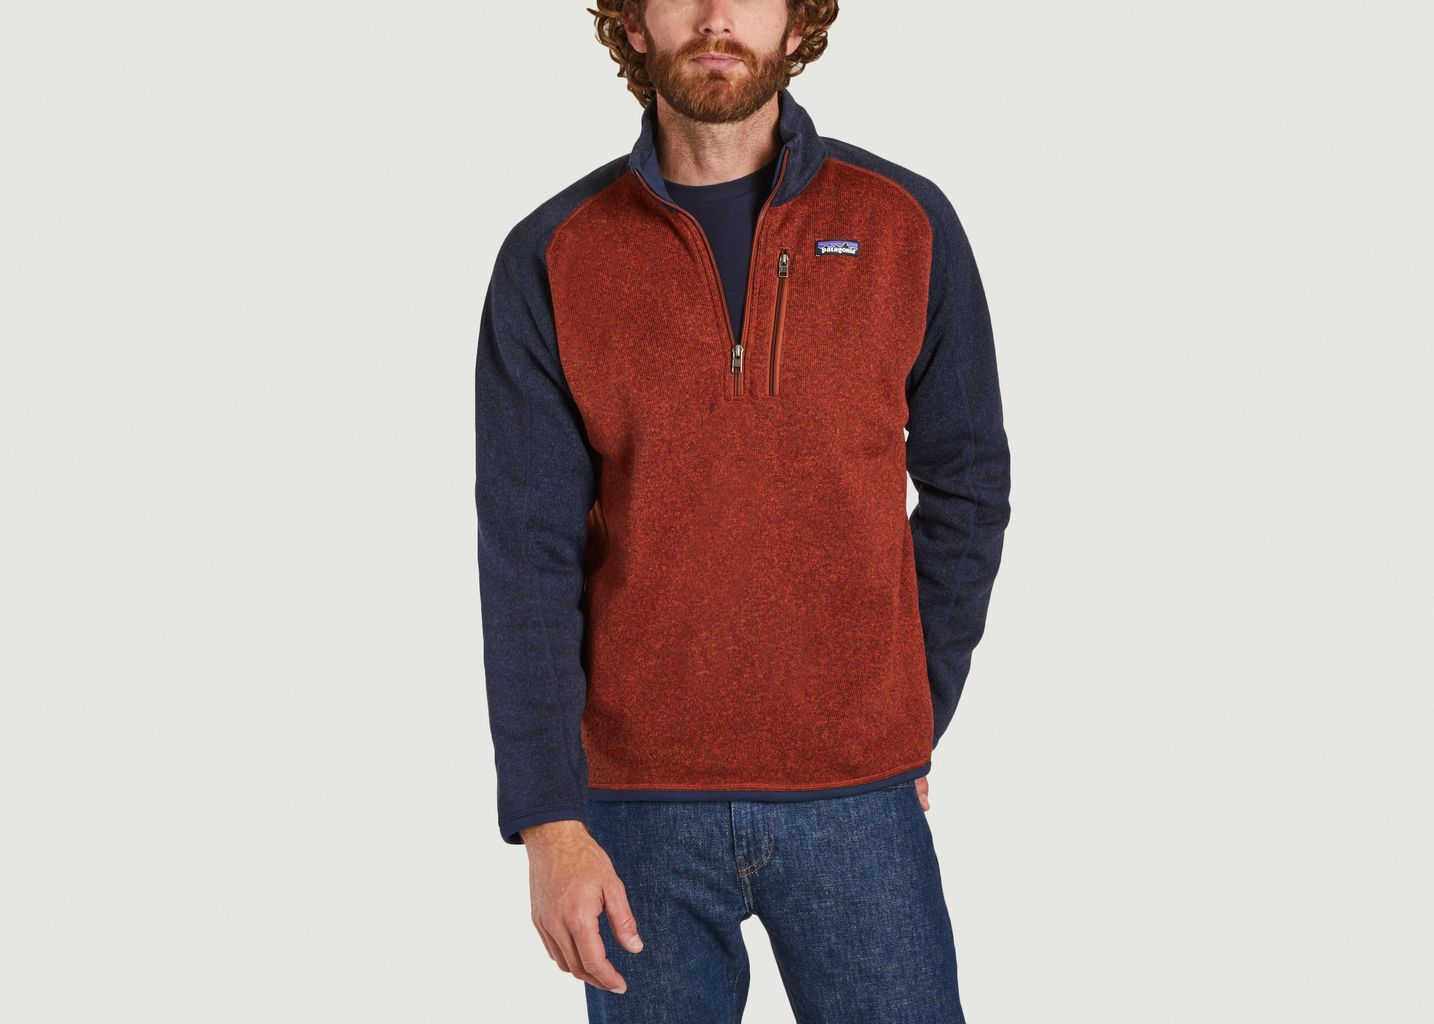 Veste Polaire Better Sweater  - Patagonia